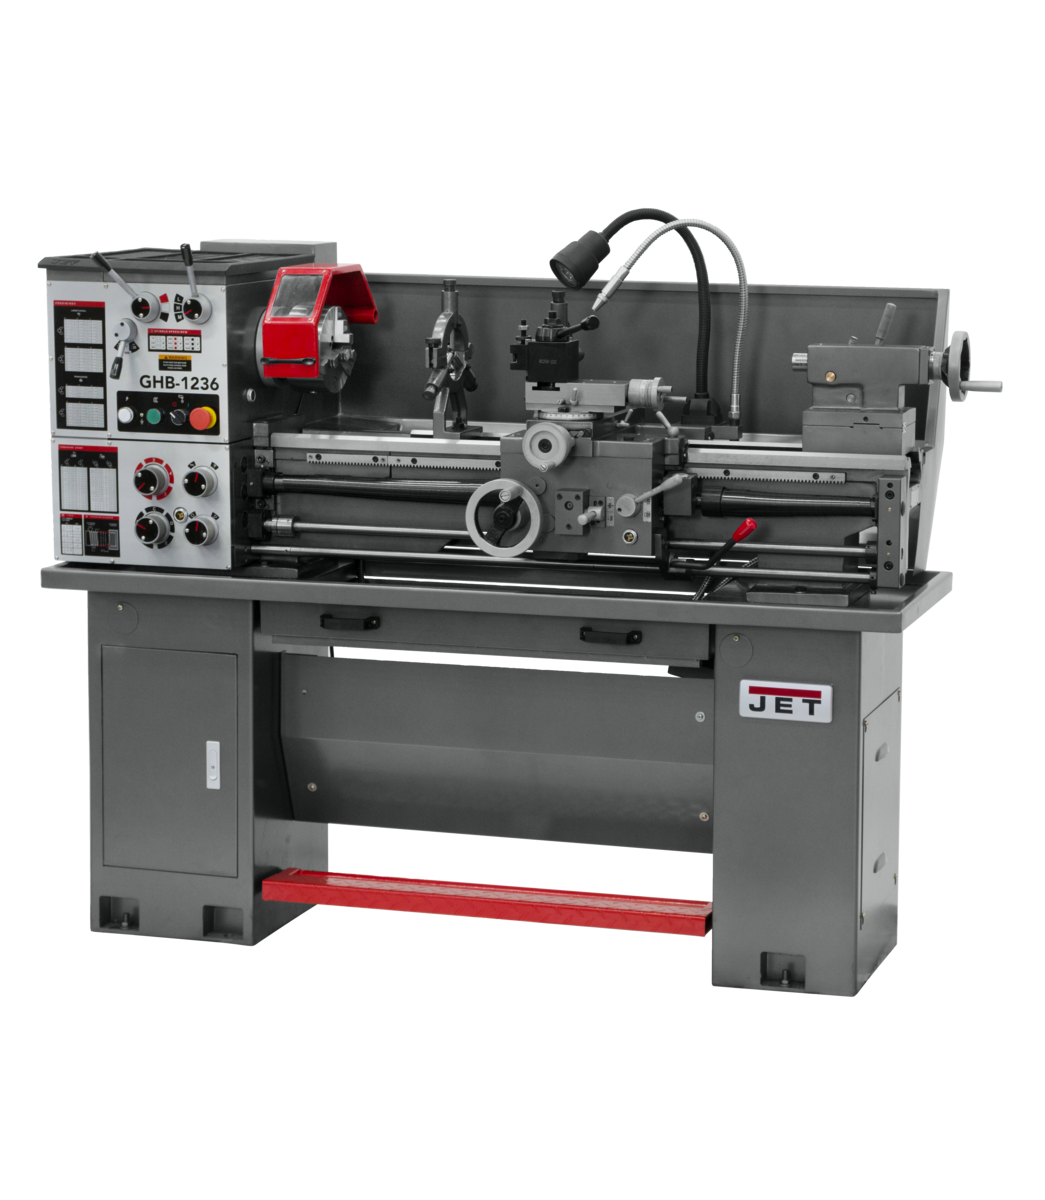 GHB-1236  Geared Head Bench Lathe with ACU_RITE 203 DRO & Taper Attachment in Jet Metalworking, Turning, Lathes